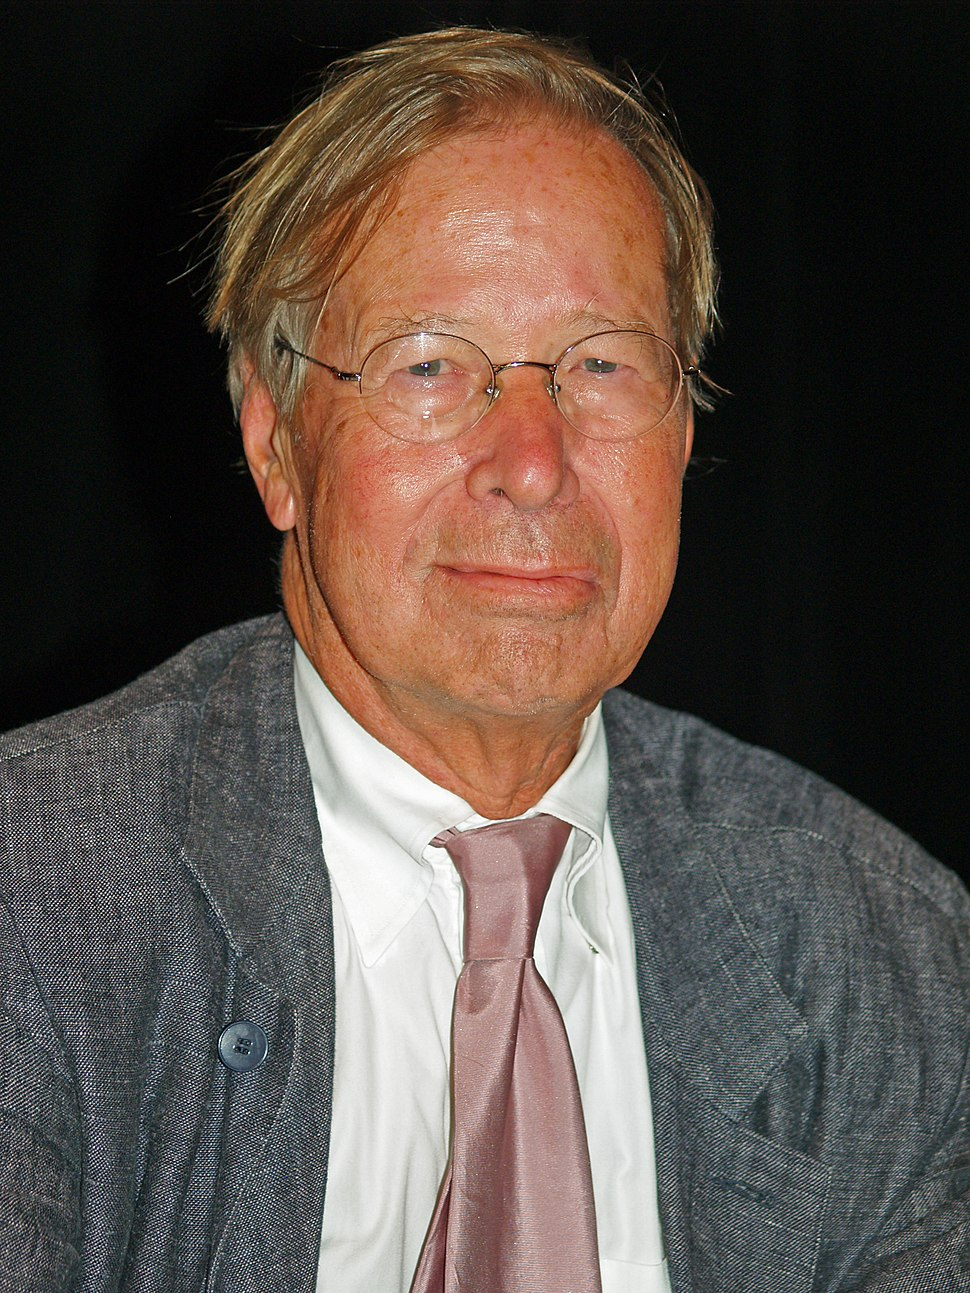 Ronald Dworkin at the Brooklyn Book Festival